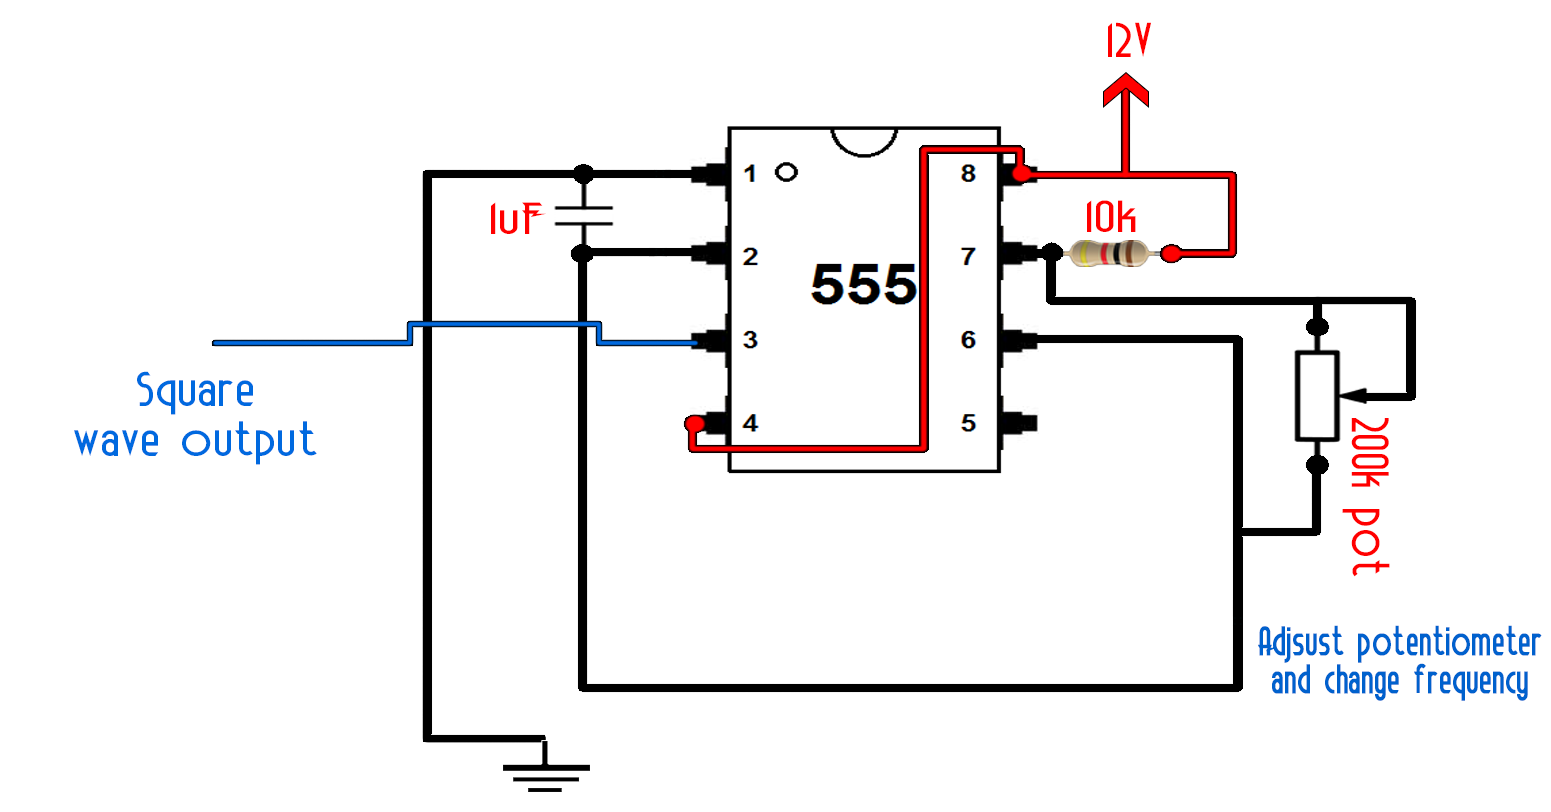 Admirable Of Astable Mode Operation Of 555 Timer With Circuit Diagram Youtube Wiring Cloud Staixuggs Outletorg